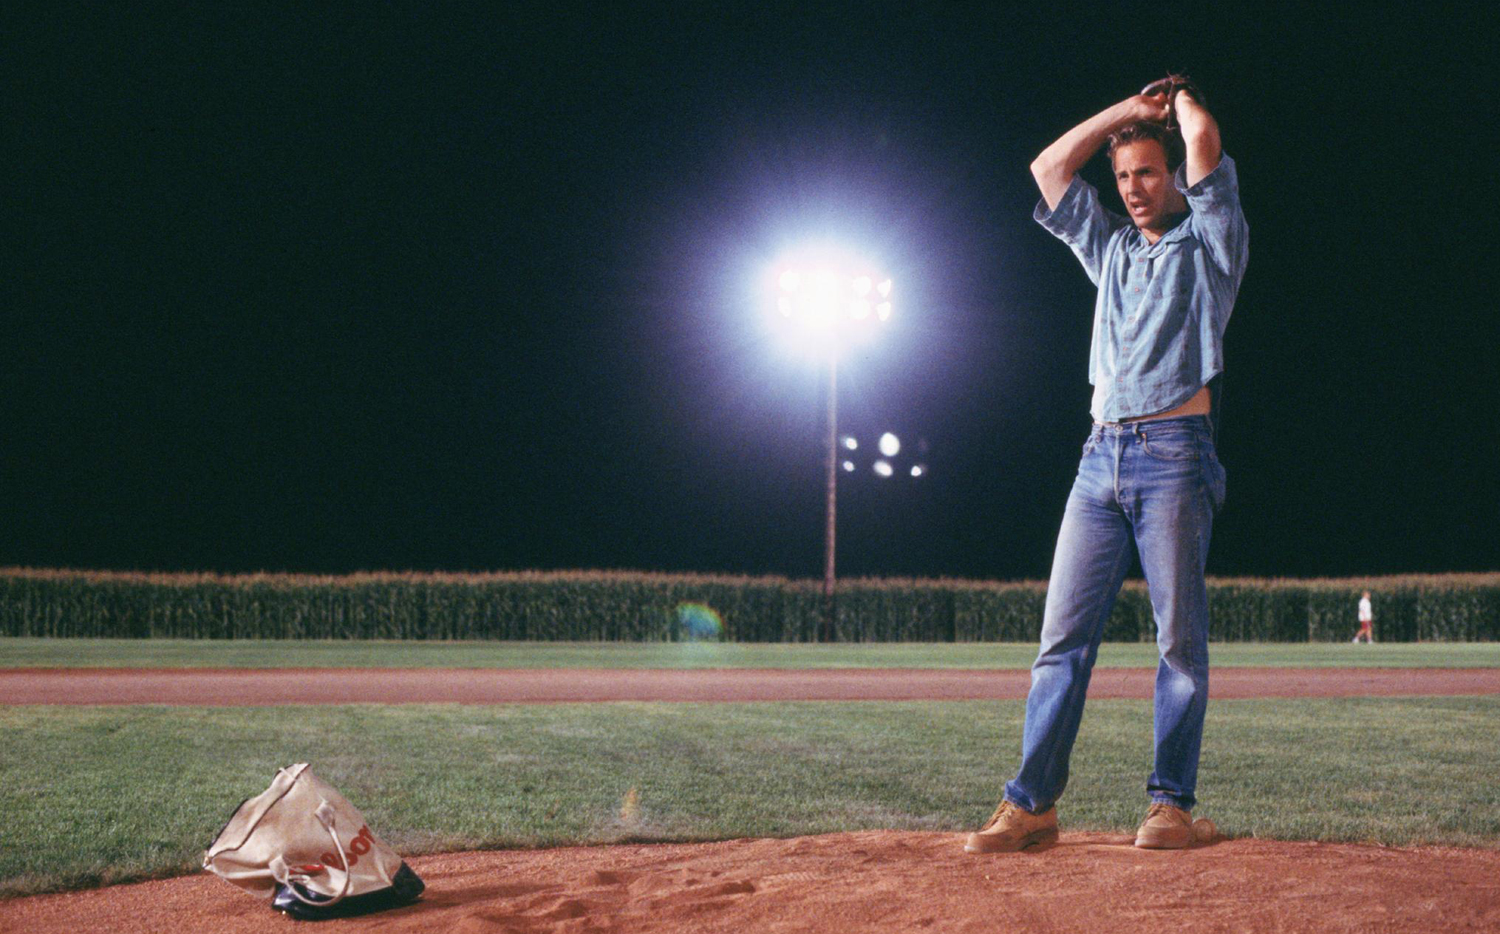 an analysis of the movie field of dreams In both the movie and the book, field of dreams and shoeless joe jackson comes to iowa ray kinsella was introduced to the viewers and readers as an ordinary man, living an ordinary life, in an ordinary town.